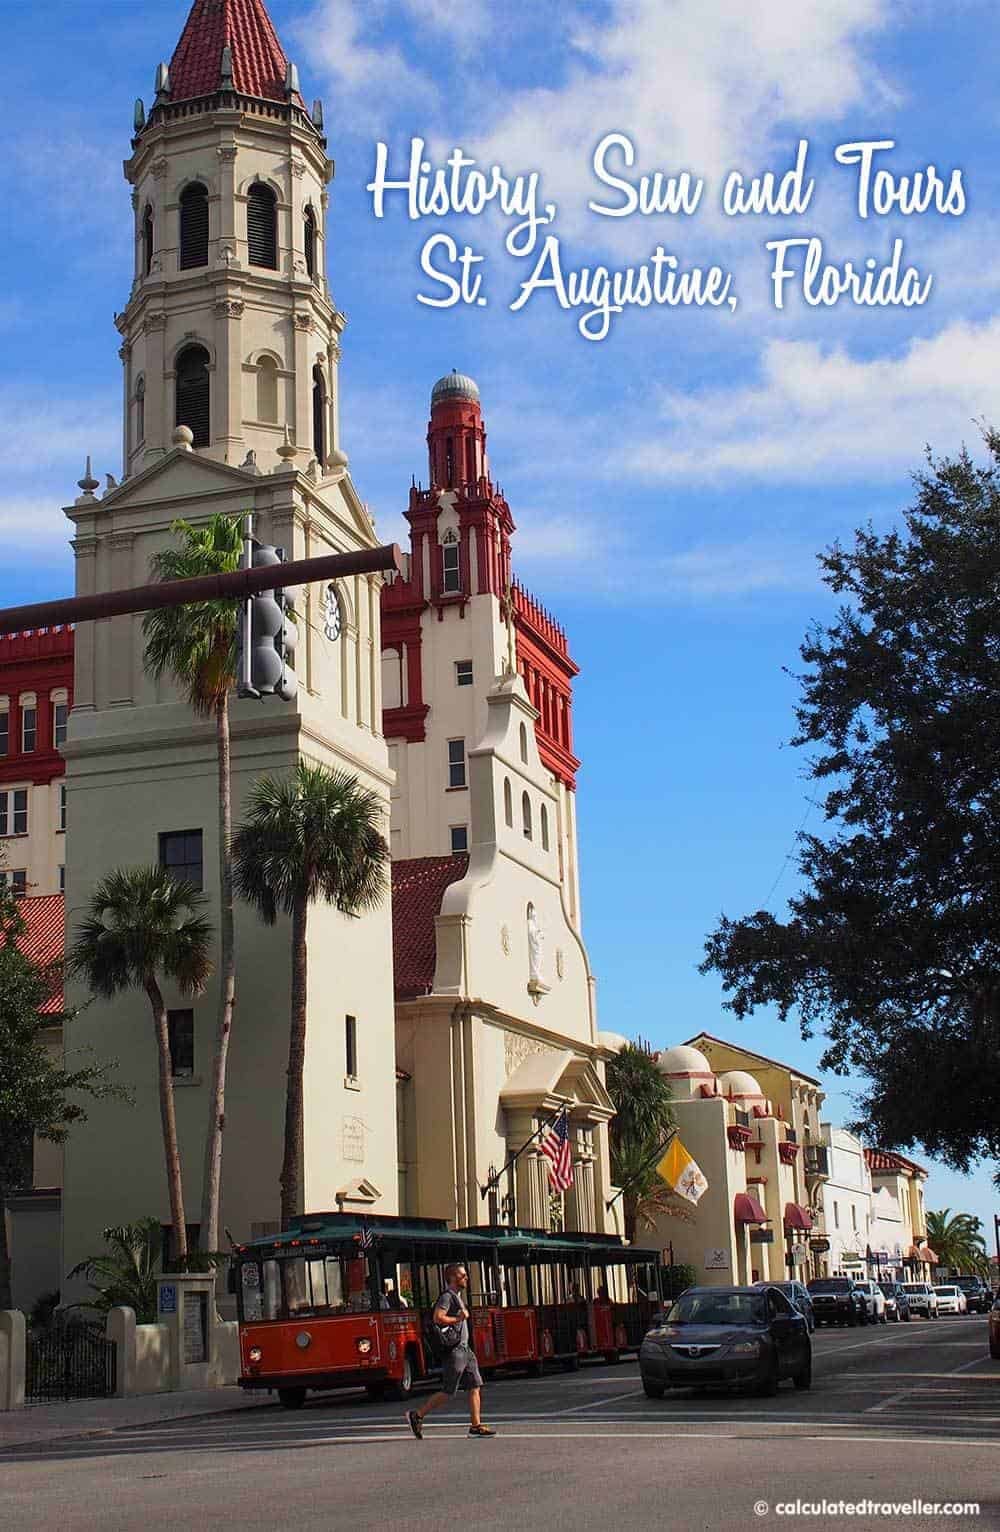 History, Sun and Tours in St. Augustine Florida by Calculated Traveller